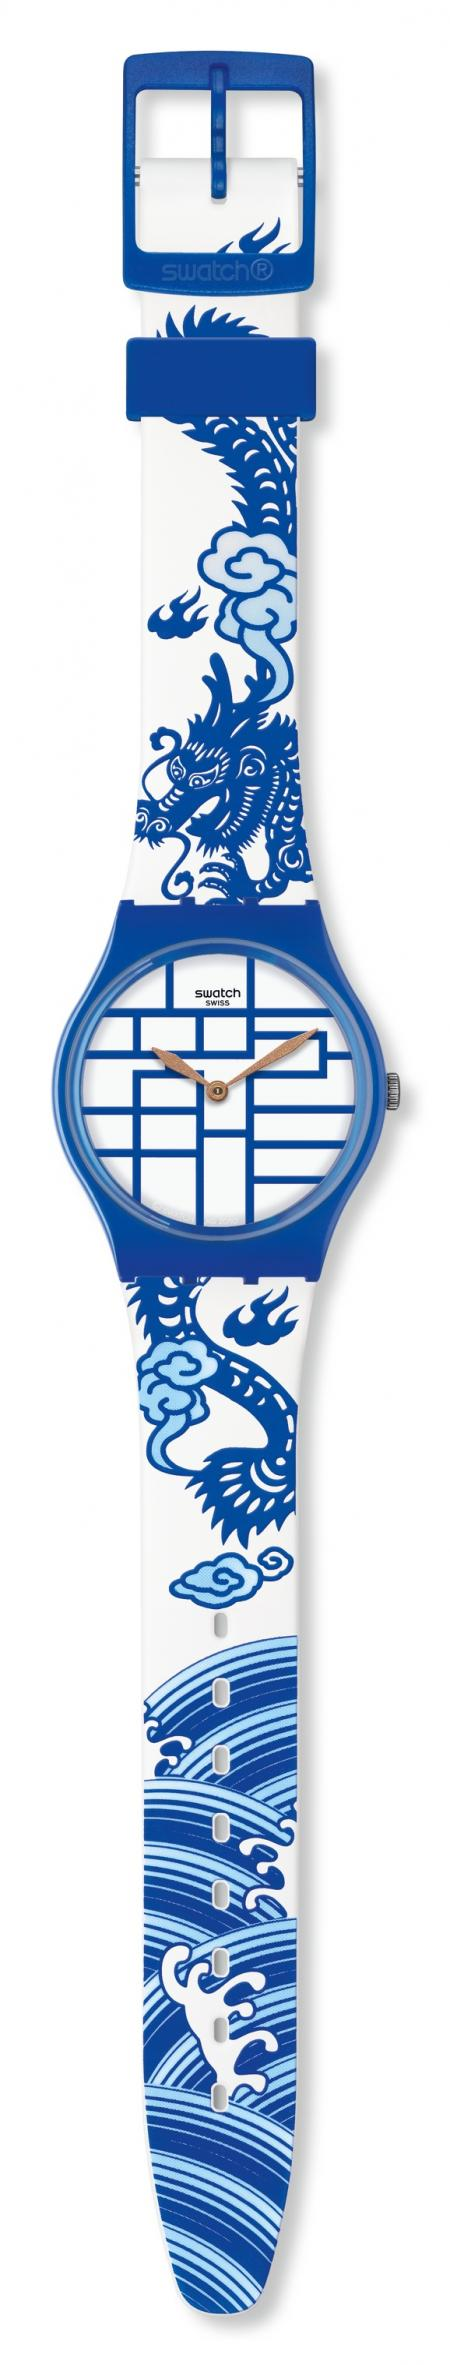 Swatch - Original Gent / Year of the Dragon